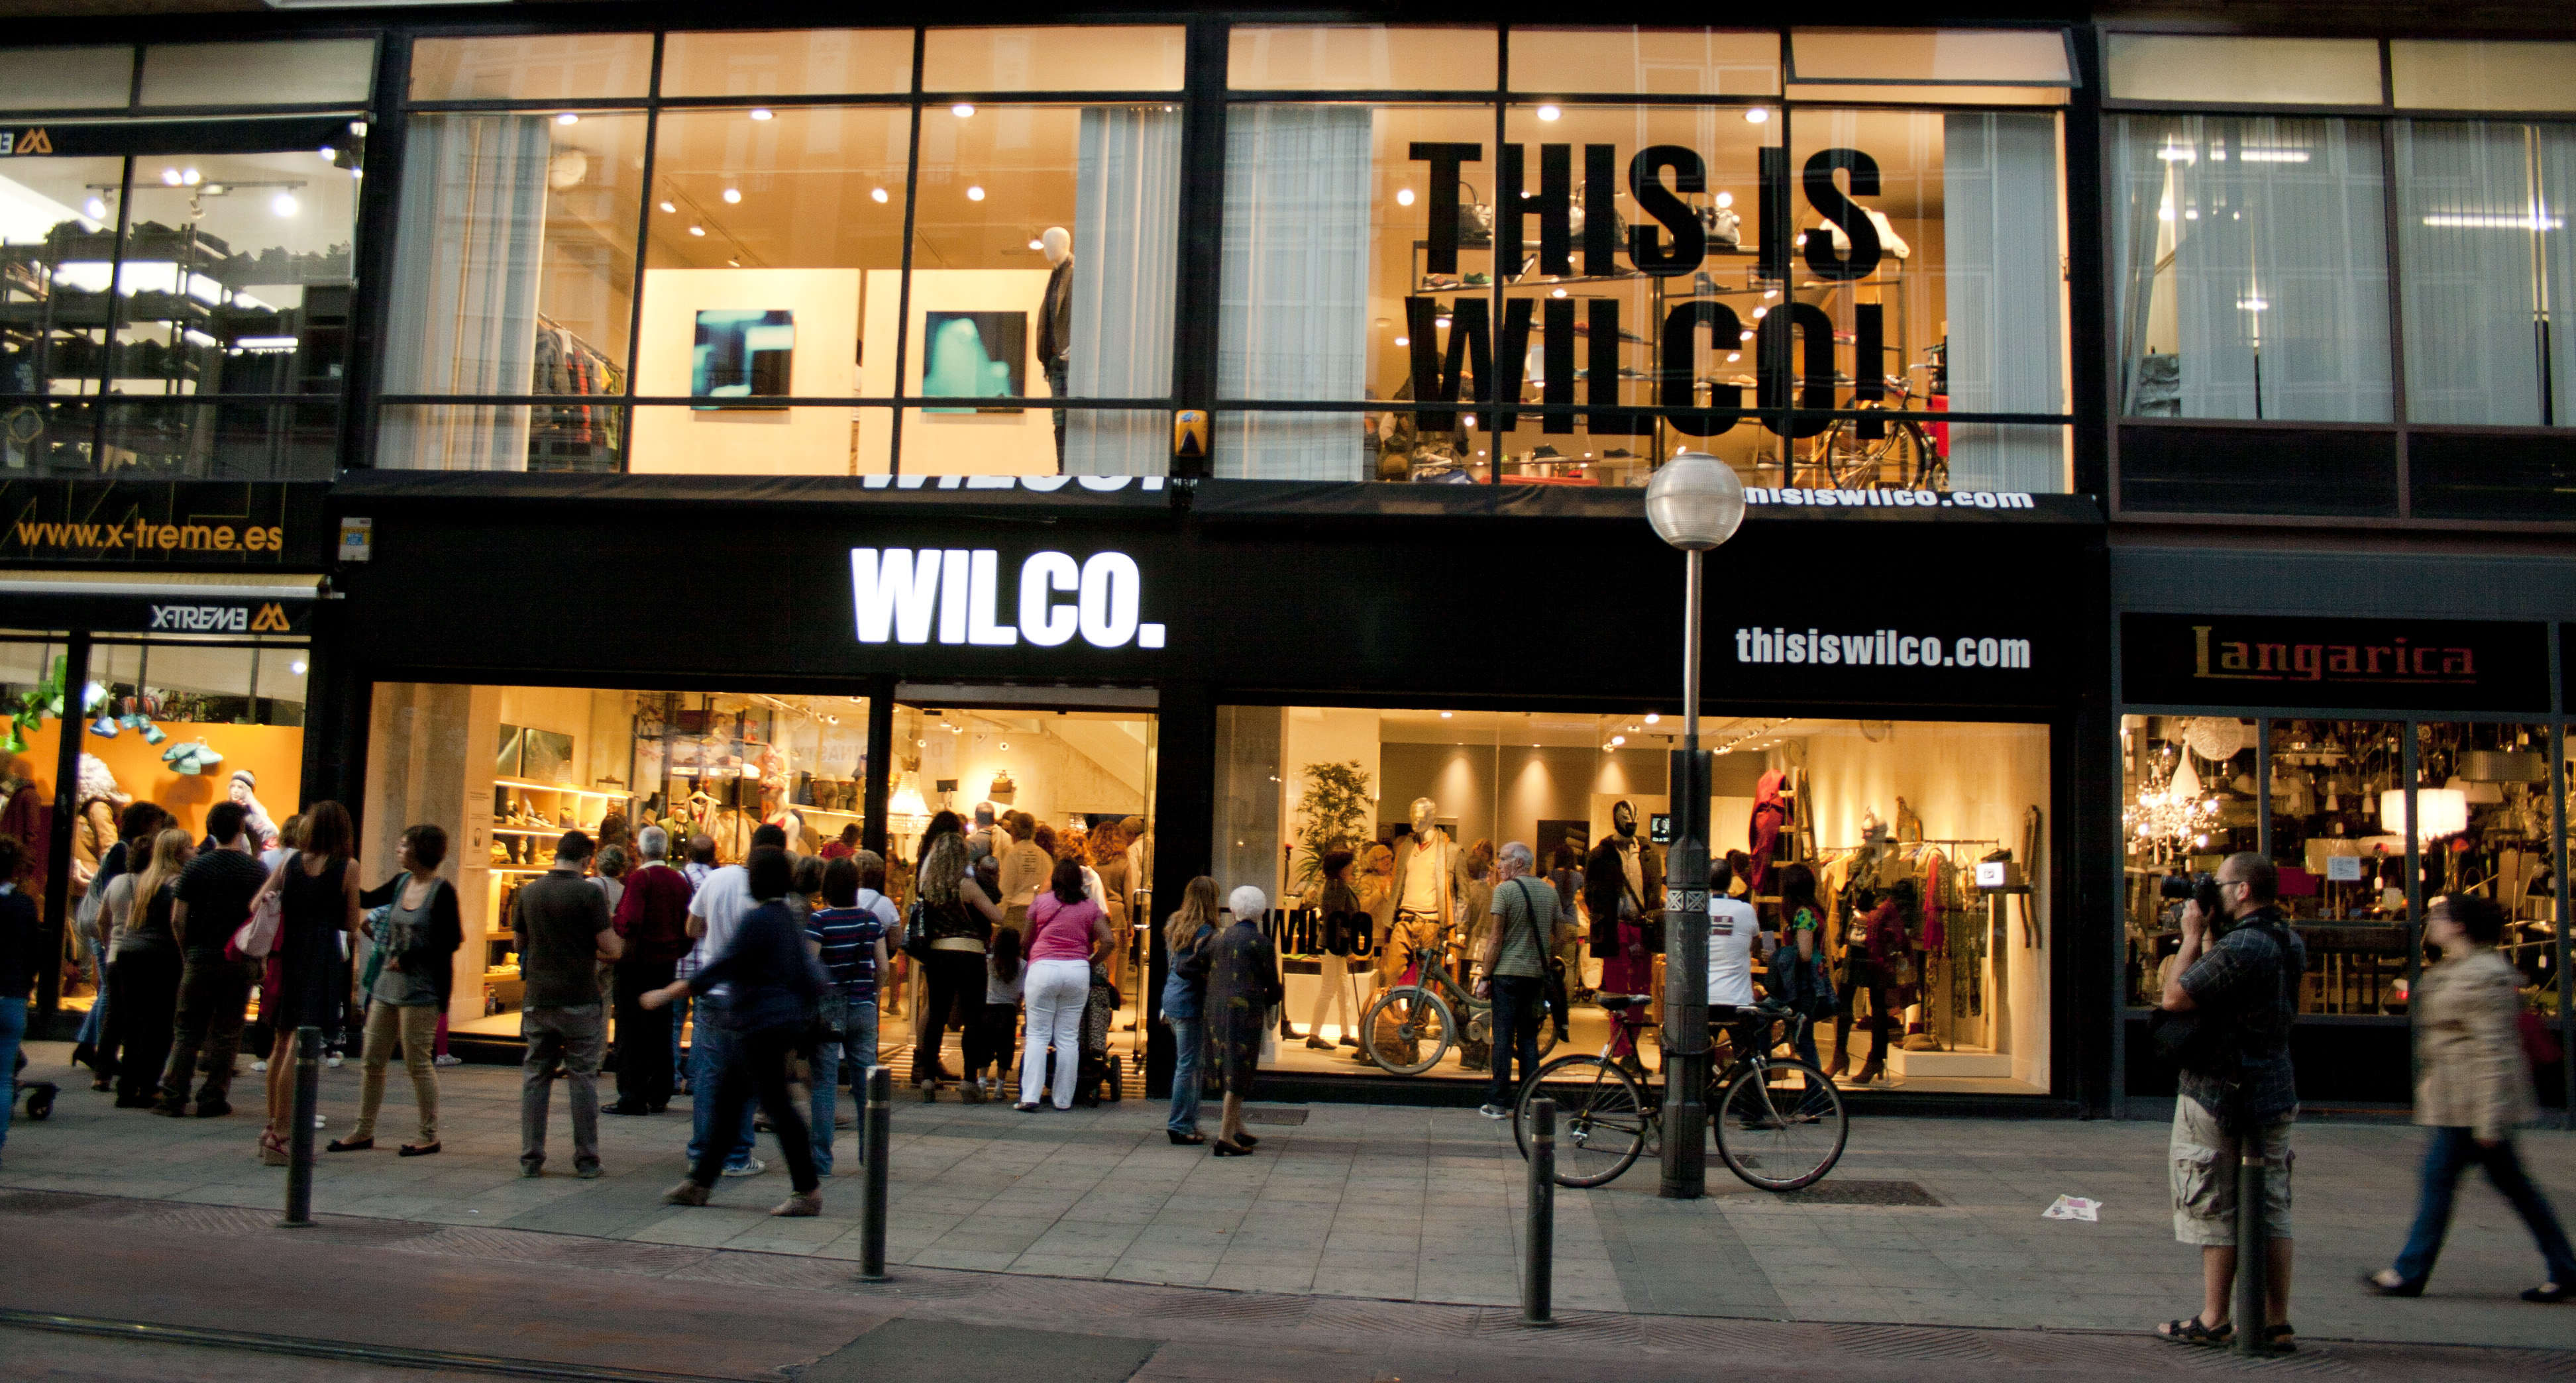 This is Wilco Vitoria Gasteiz